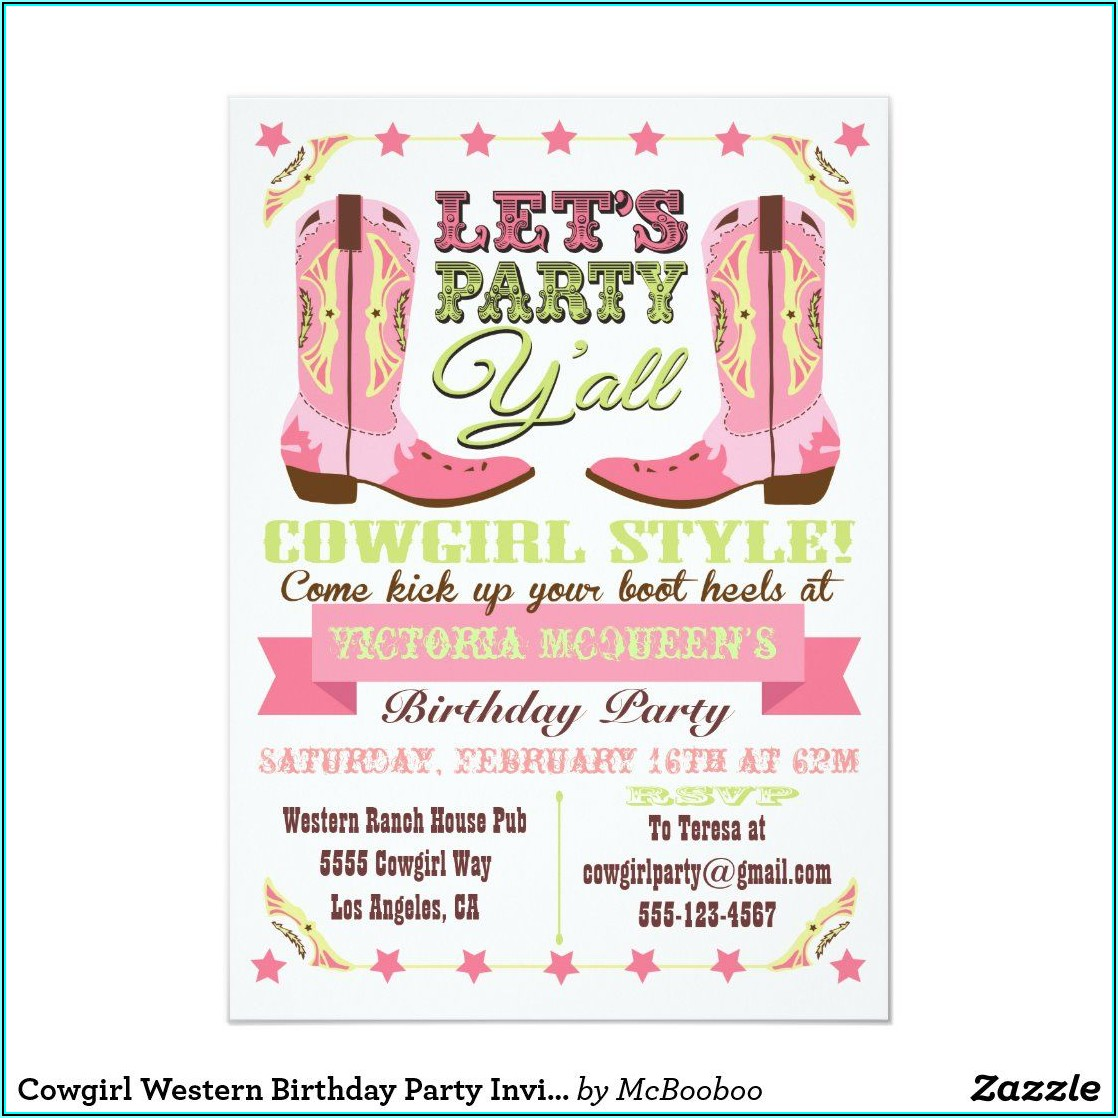 Cowgirl Bachelorette Party Invitations Templates